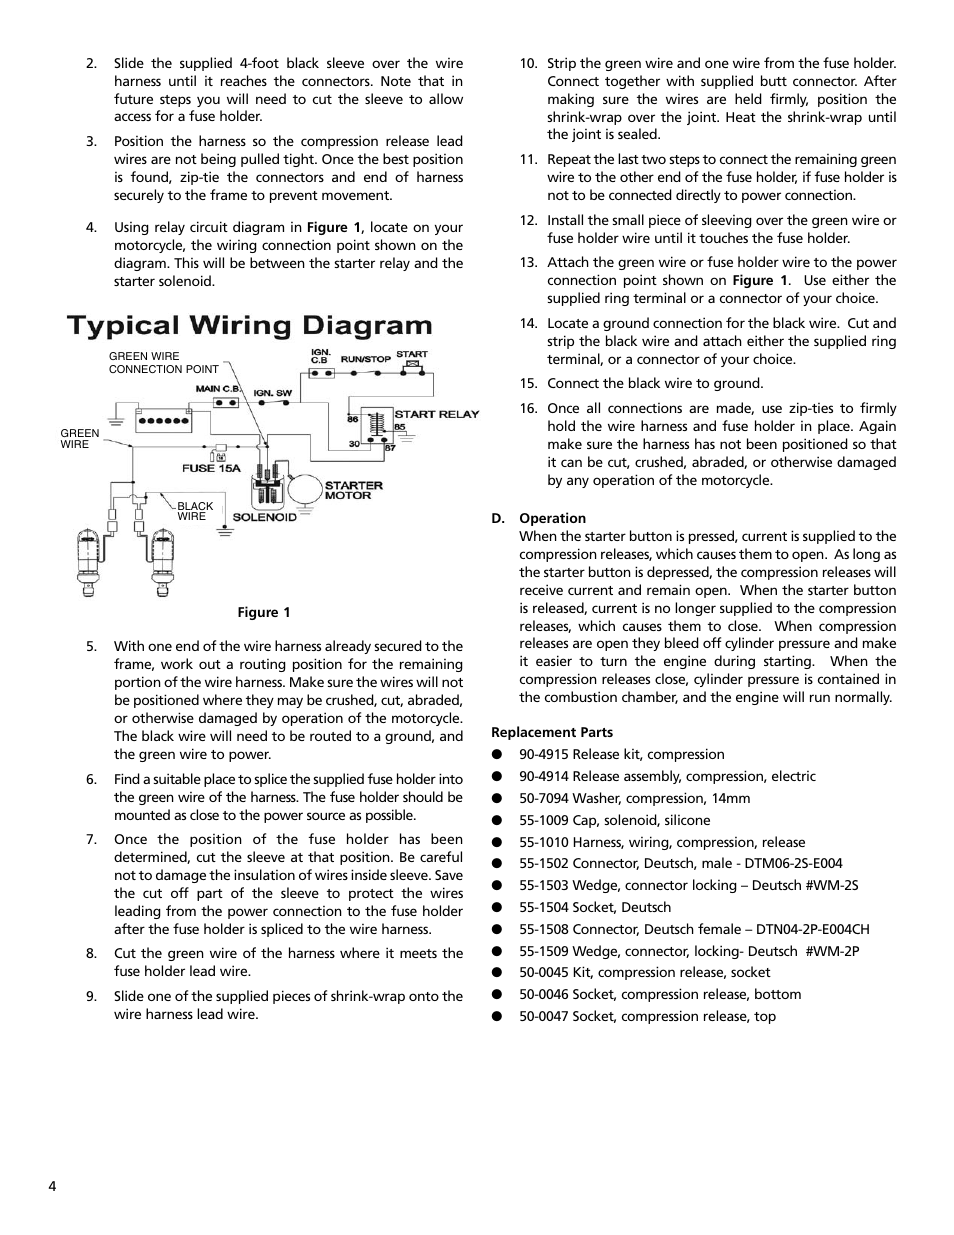 ss cycle electric compression release pn 90 4915 page4 s&s cycle electric compression release pn 90 4915 user manual s&s compression release wiring diagram at readyjetset.co